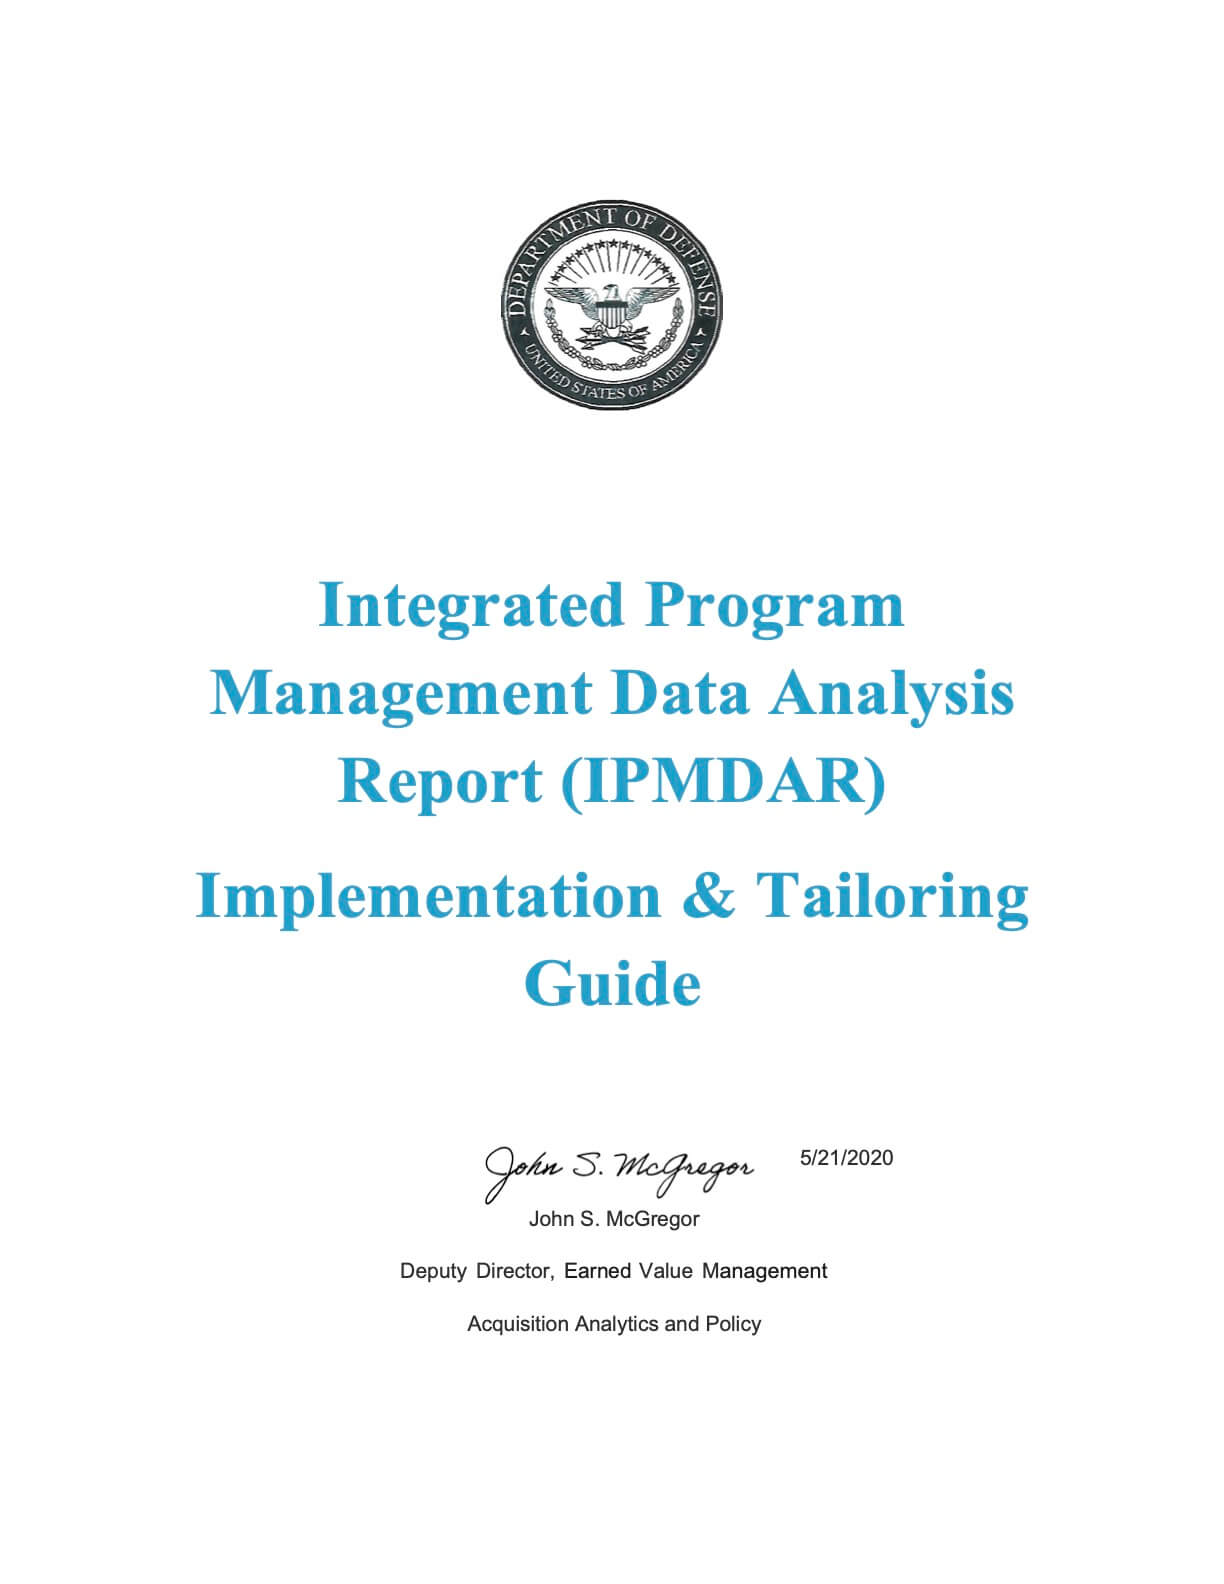 IPMDAR Implementation Guide - May2020 - FINAL - Signed and Dated